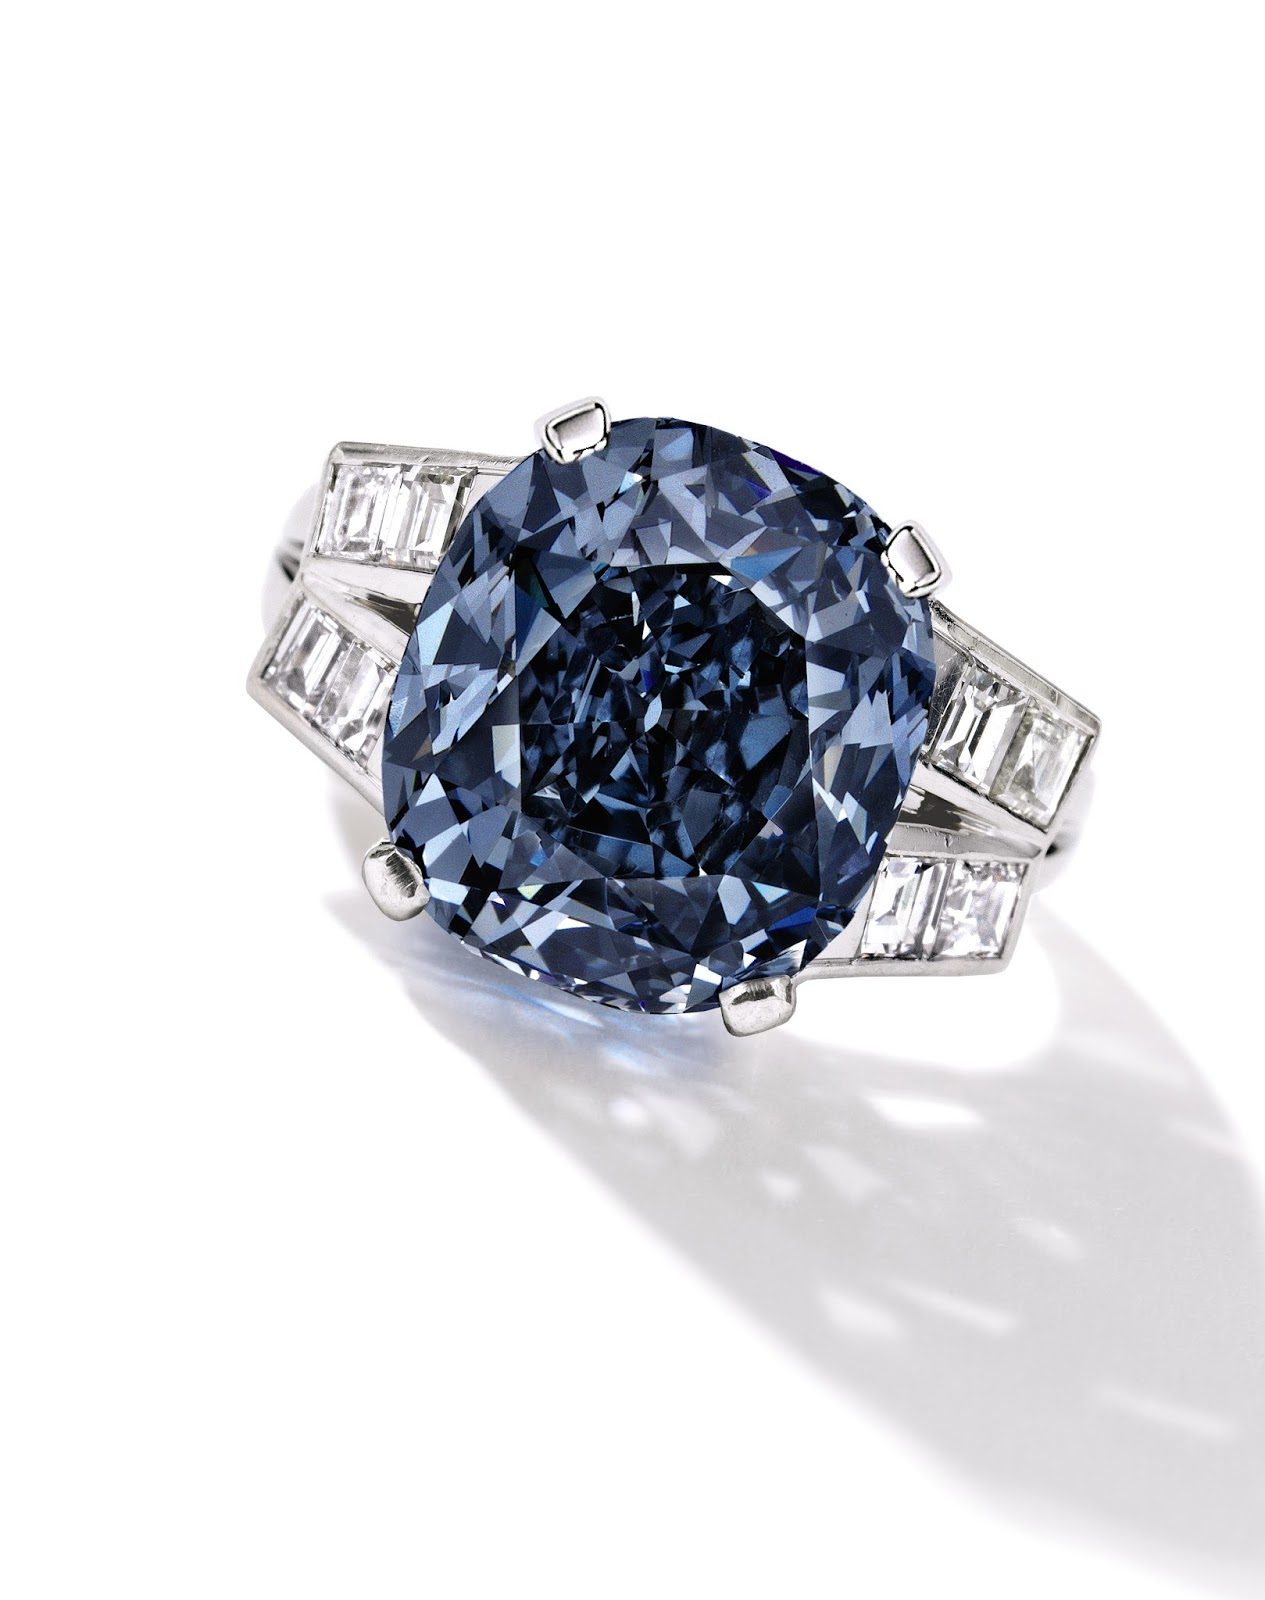 diamonds diamond ring blue munn gemstones colored product gallery search s coast